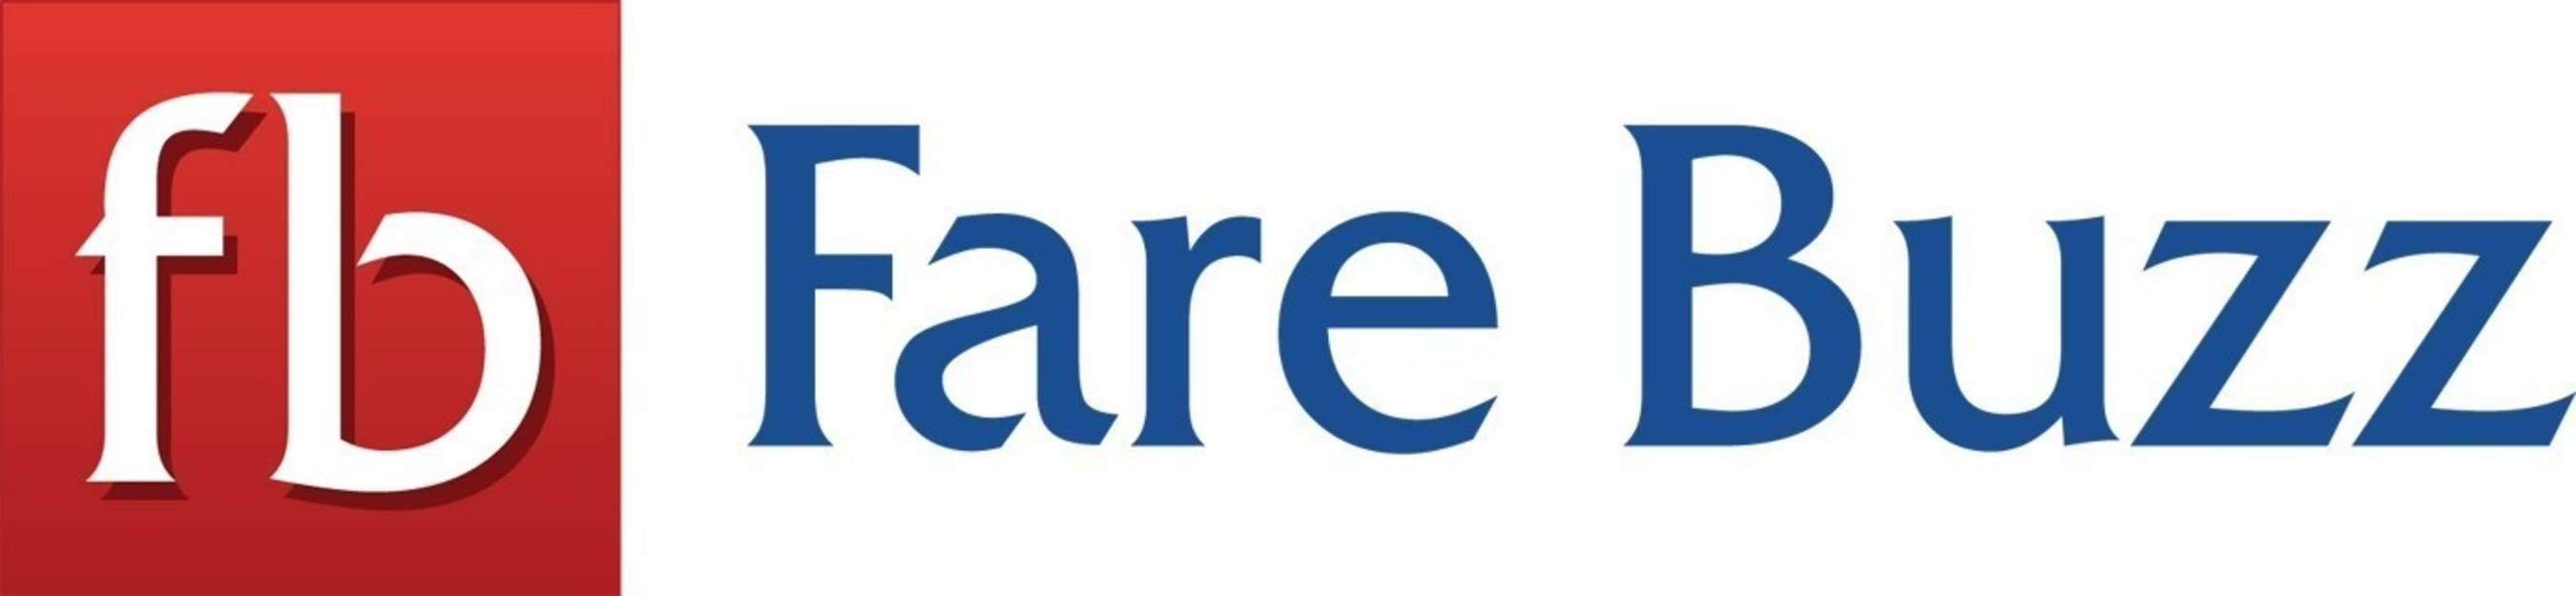 Fare Buzz Logo.